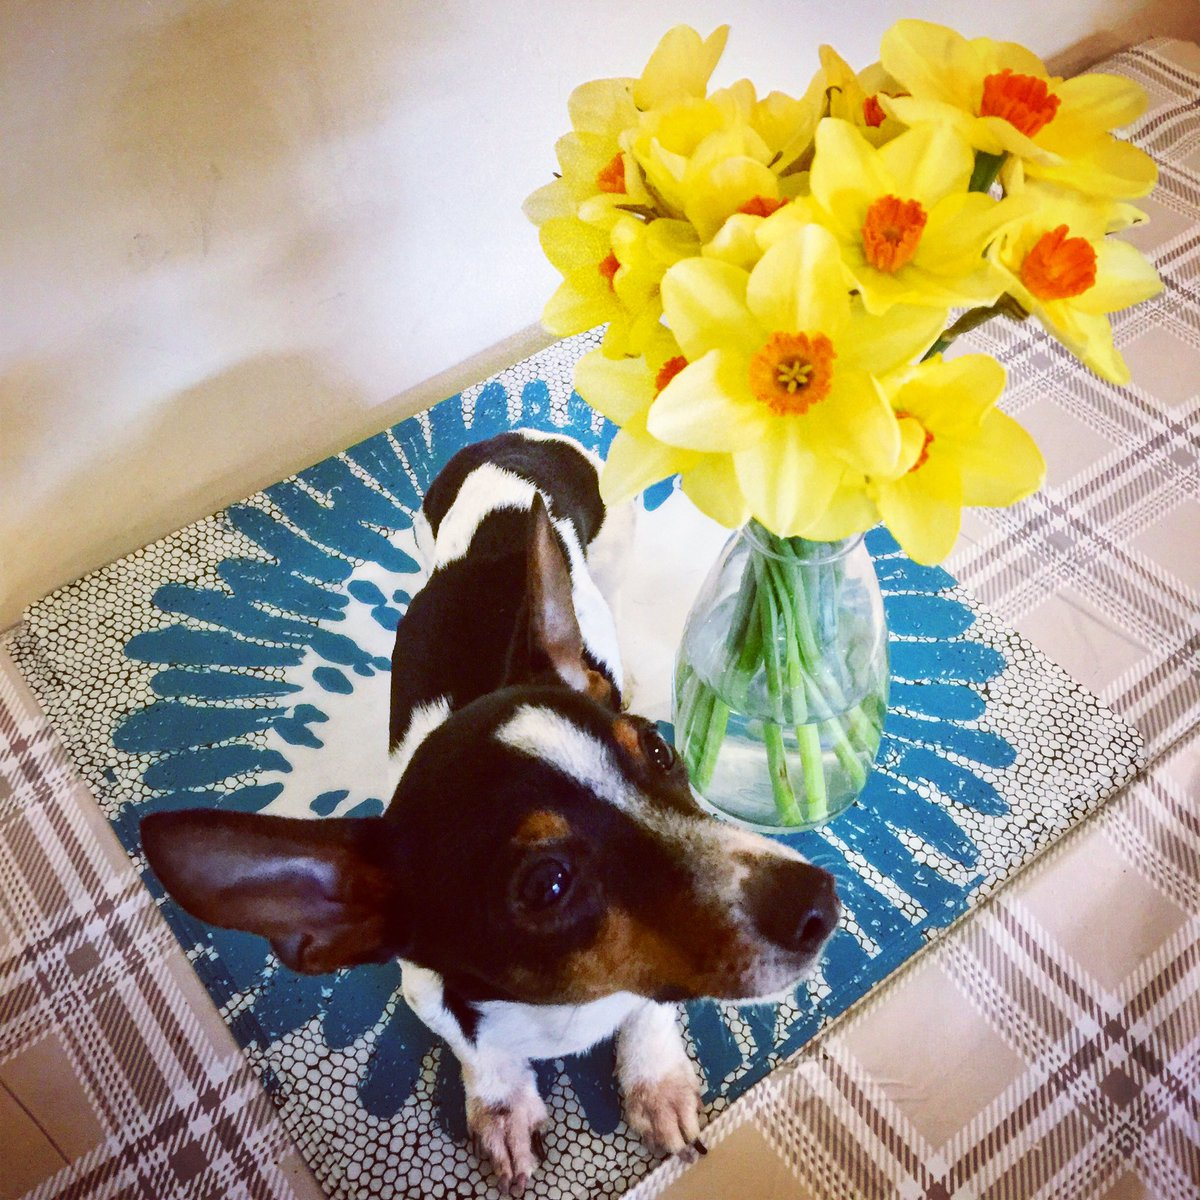 Happy Easter from Iggy and the HikerHounds Pack! 🐣 #EasterBunny #daffodils #dogsoftwitter #Dogfamily #AdoptDontShop